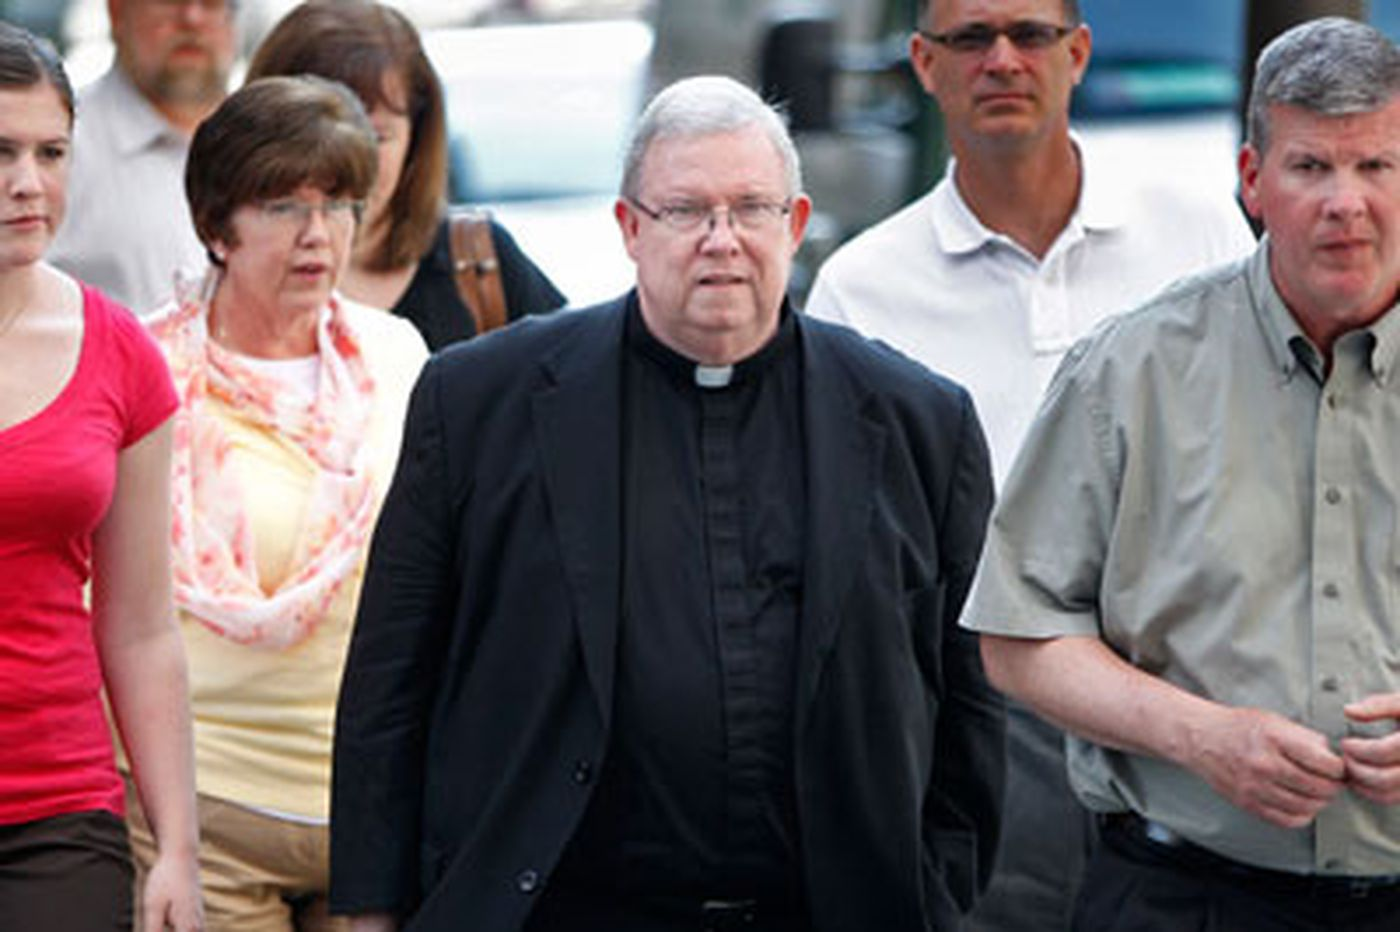 Monsignor: 'Many victims ... told me I helped them'